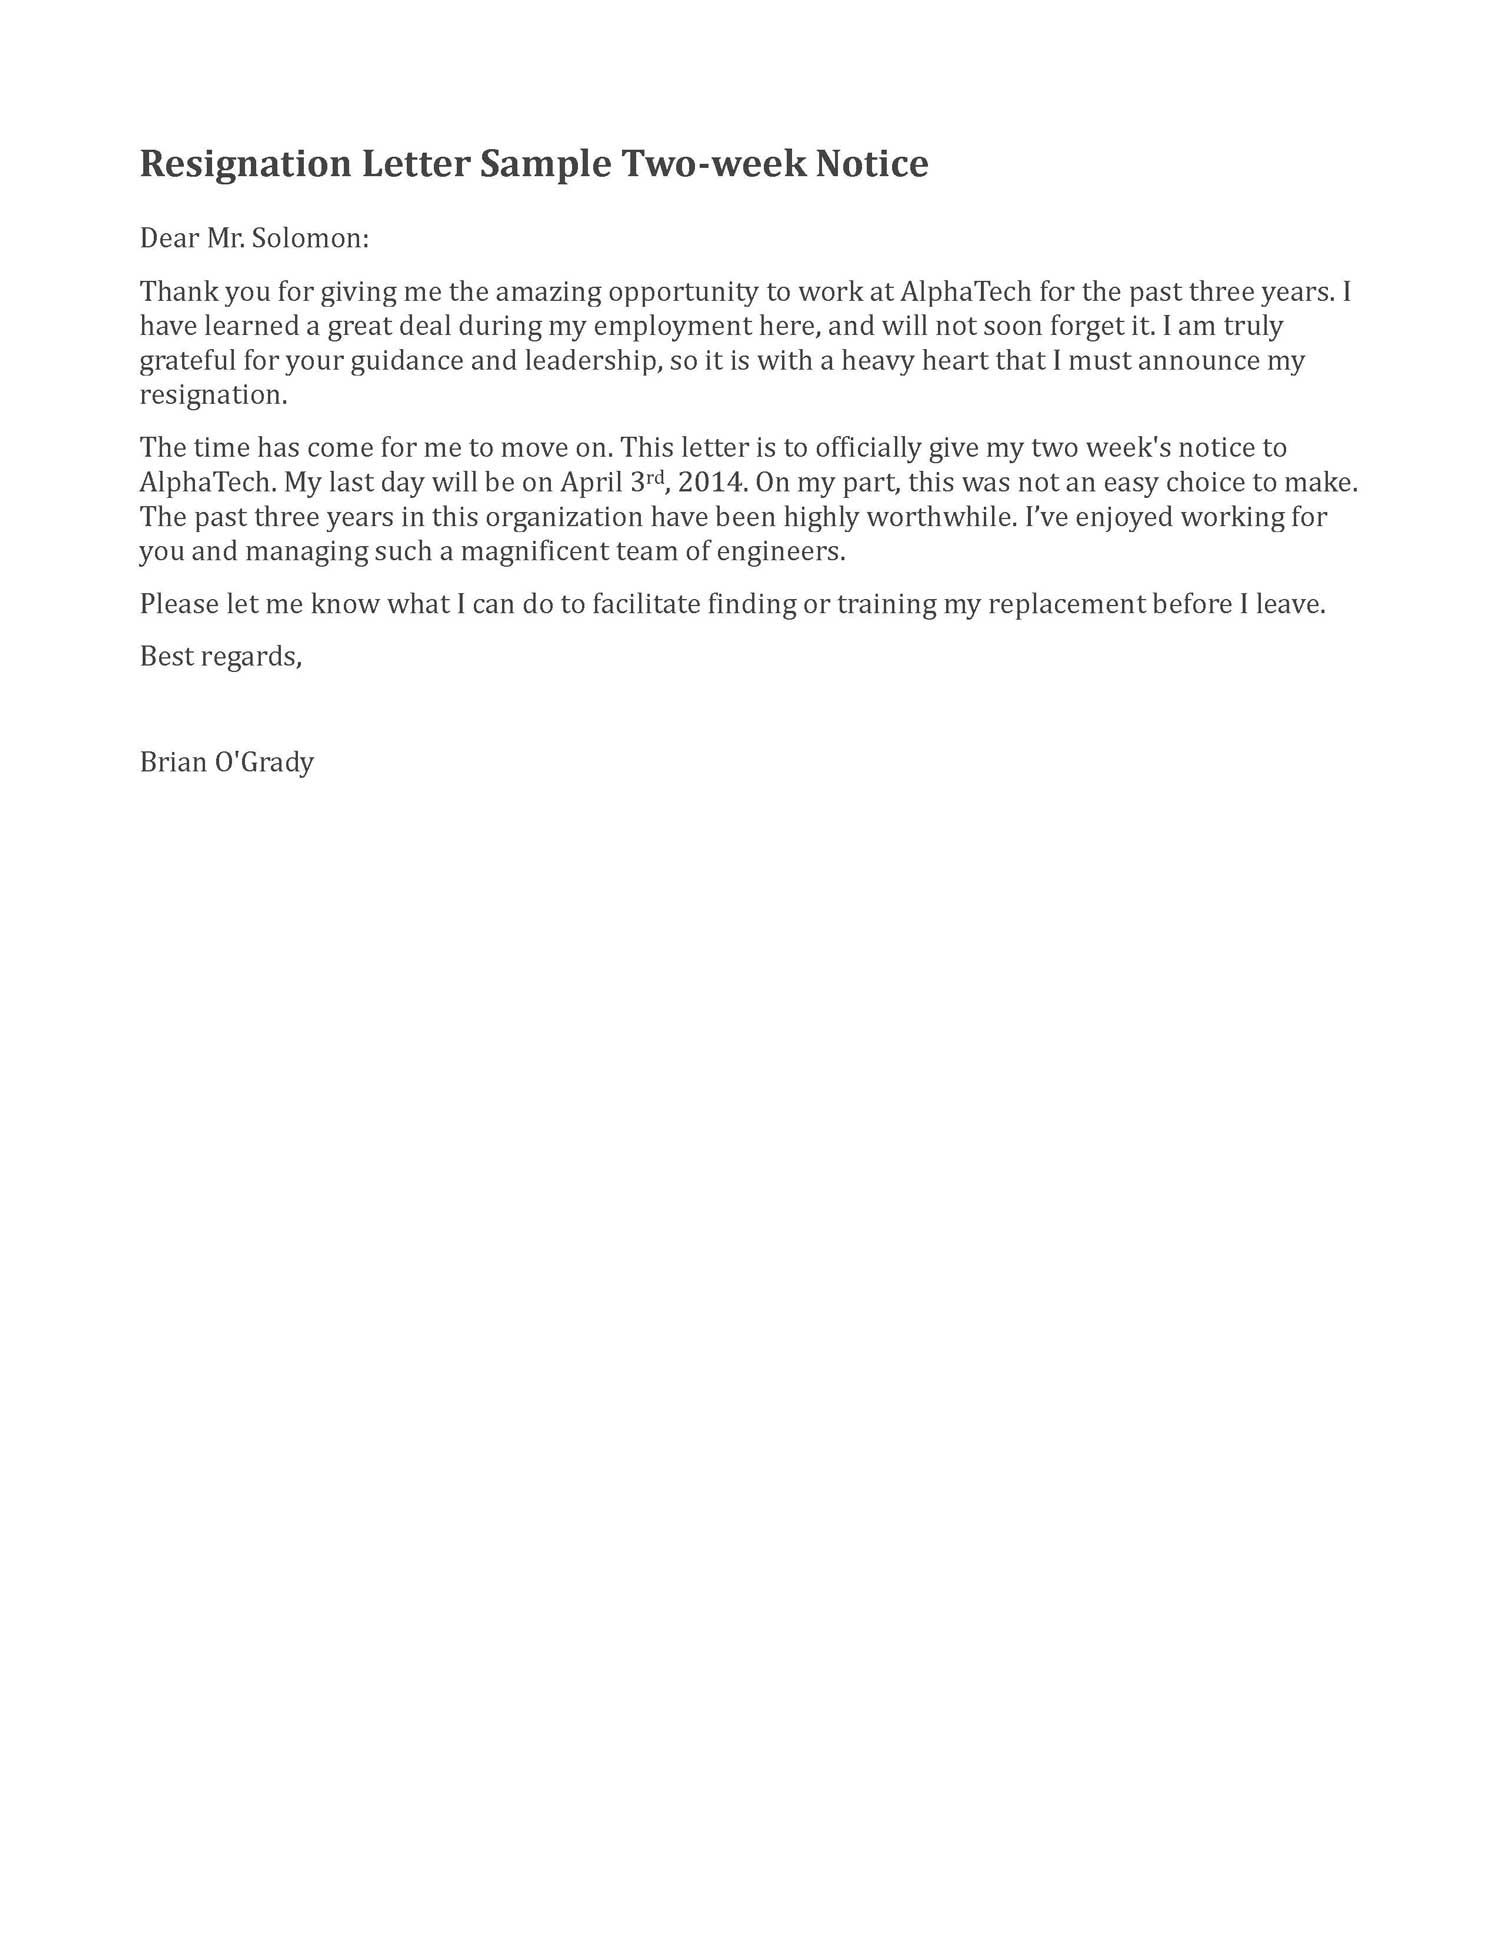 Sample Of Letter Of Resignation Two Weeks Notice Resignation Letter Format:  Let Me Short Resignation Letter Sample .  2 Weeks Notice Letter Format